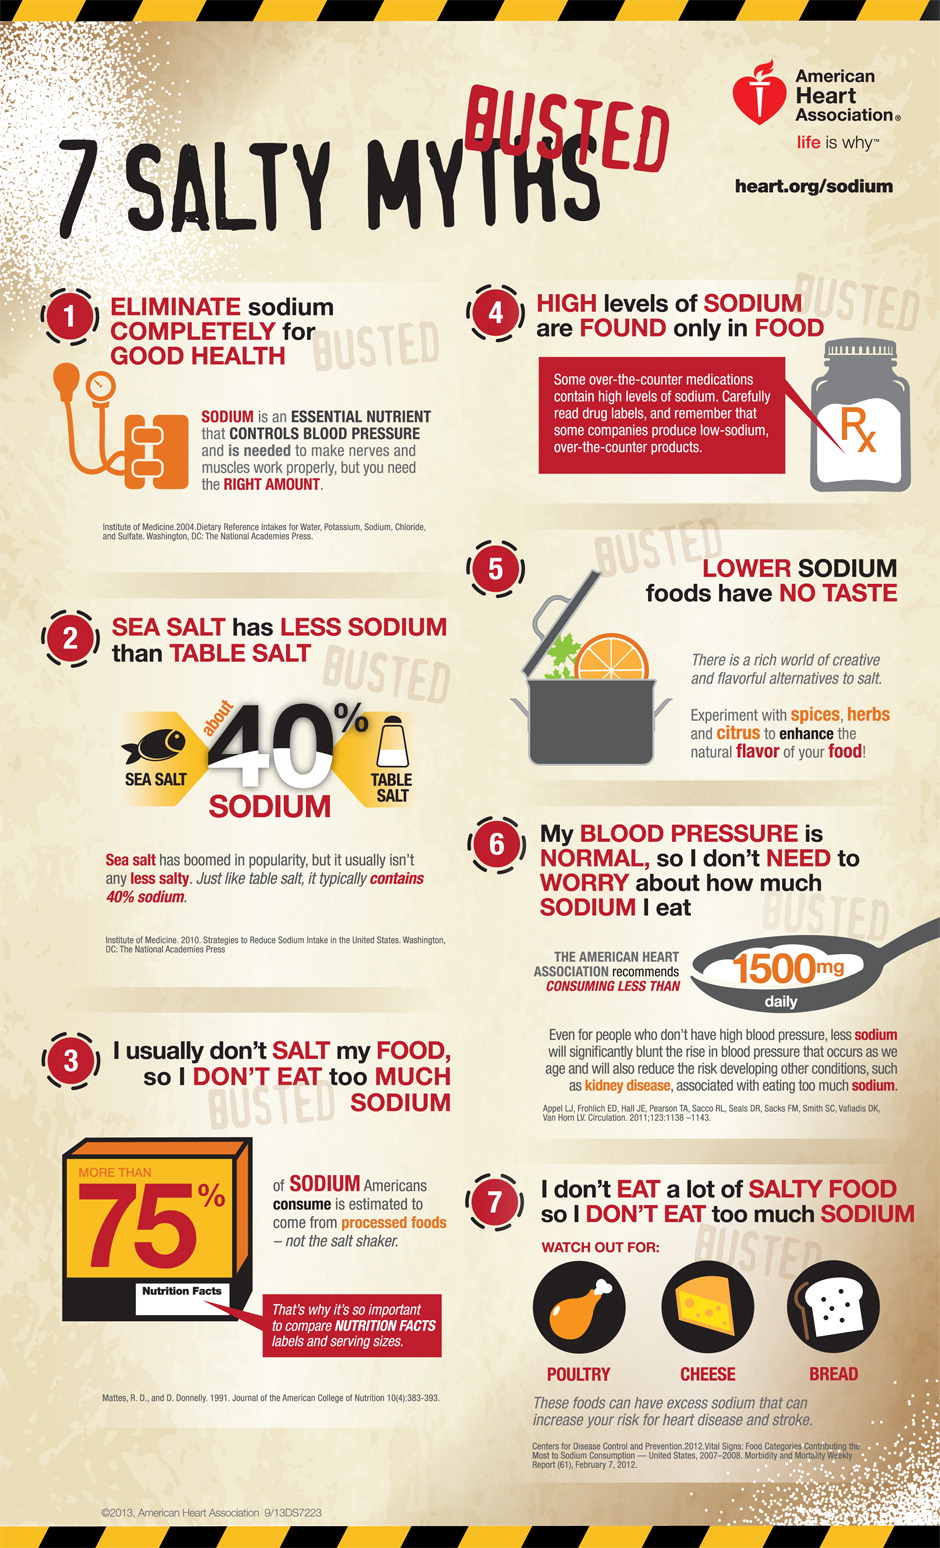 7 Salty (Sodium) Myths BUSTED Infographic